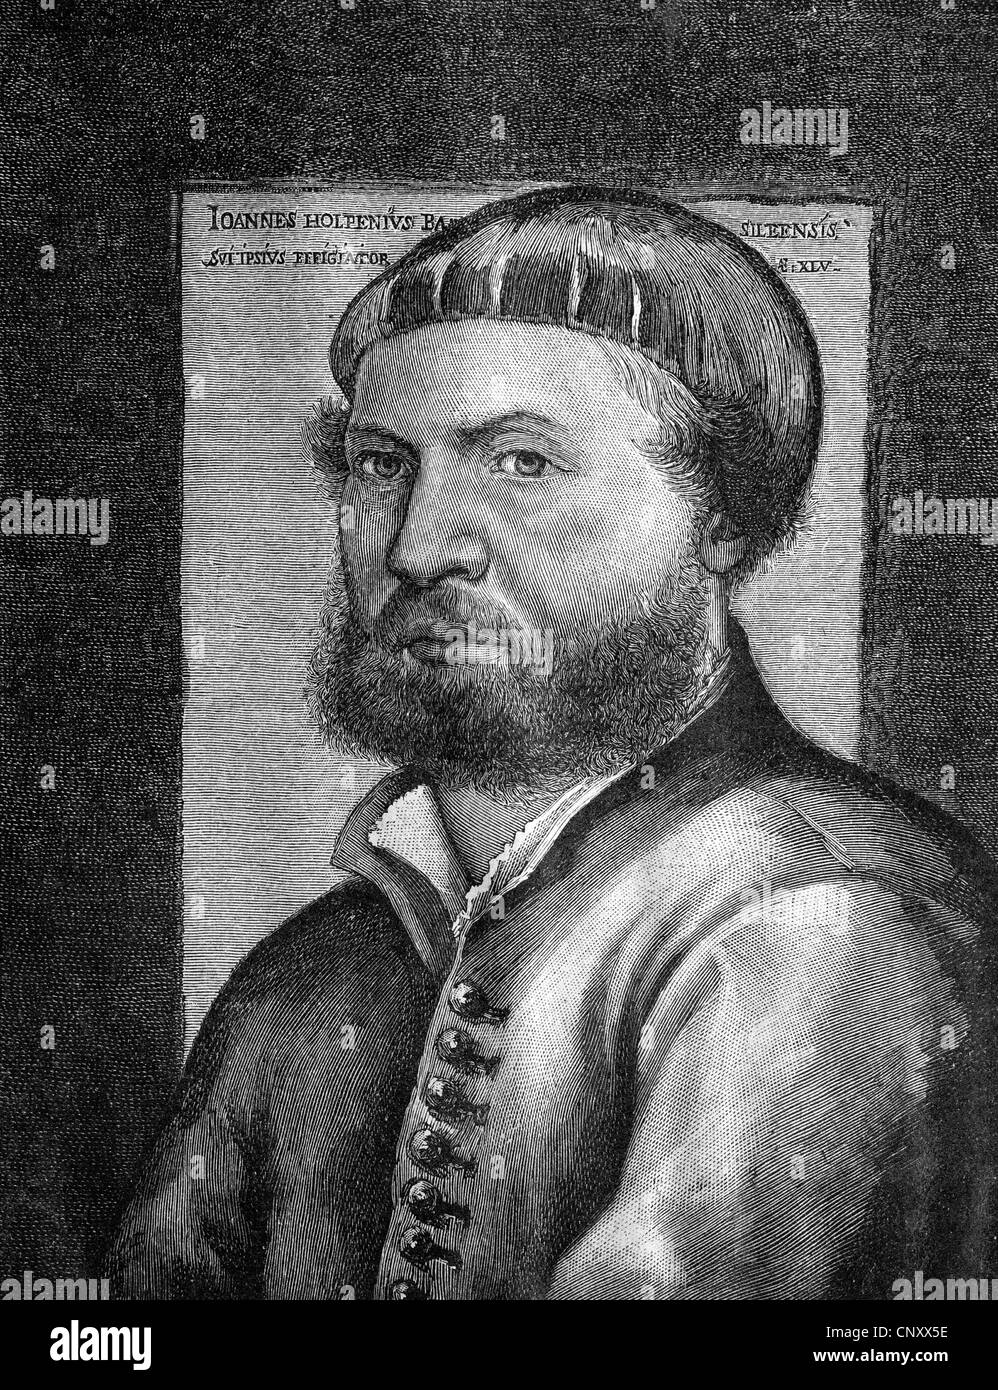 Hans Holbein the Younger, 1497 - 1543, a German painter, historic wood engraving, about 1897 - Stock Image